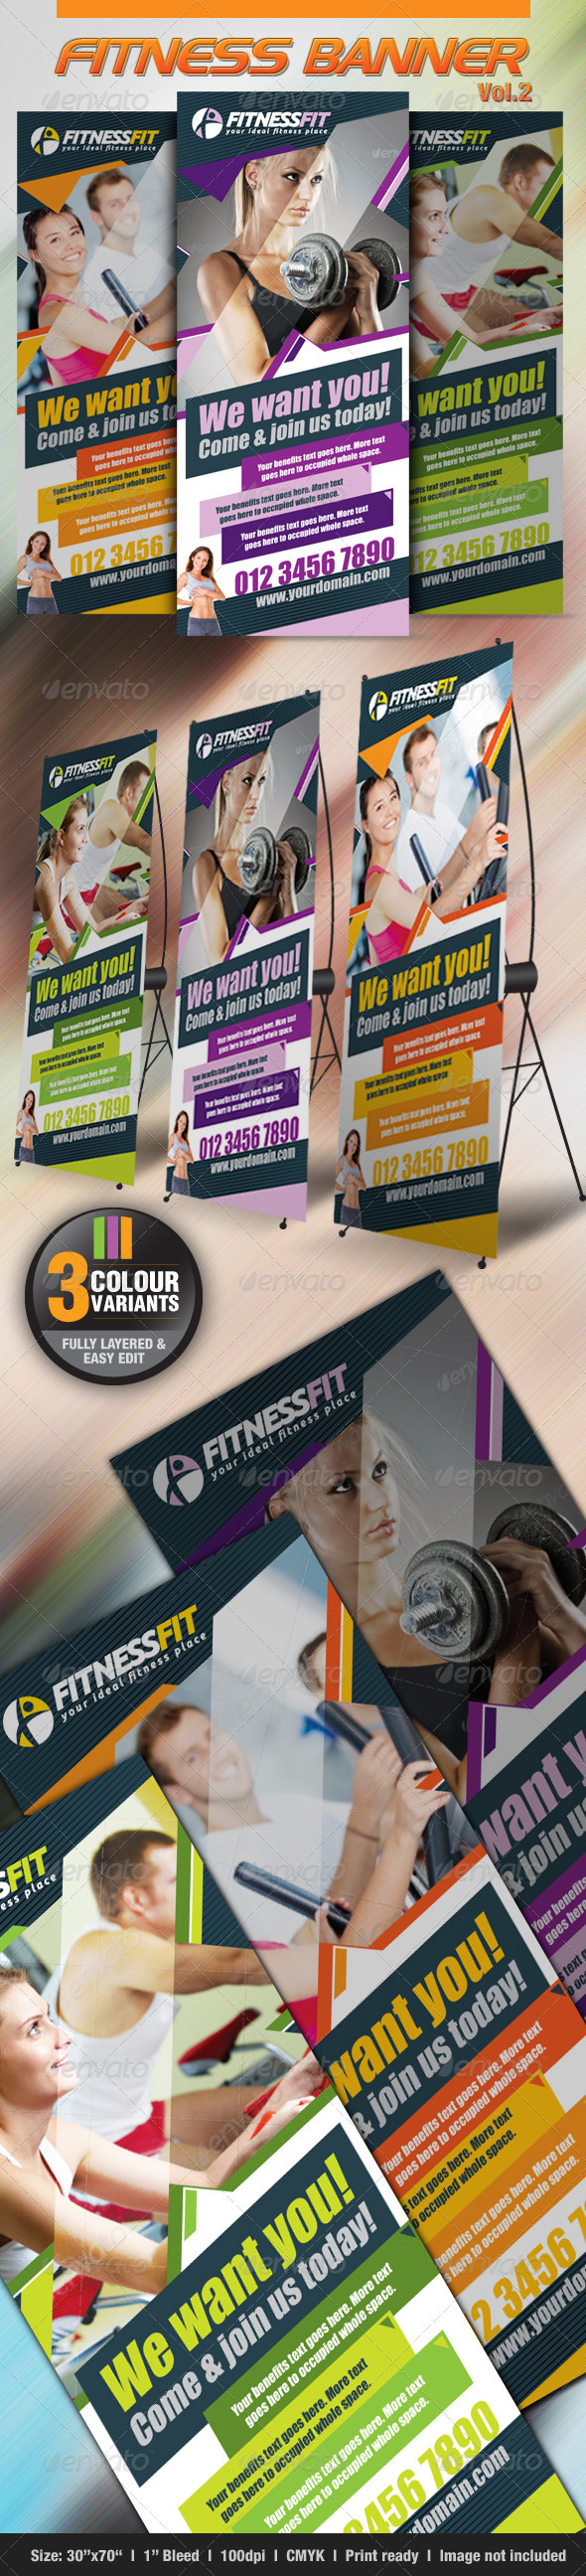 GraphicRiver Fitness Banner Vol.2 2668016